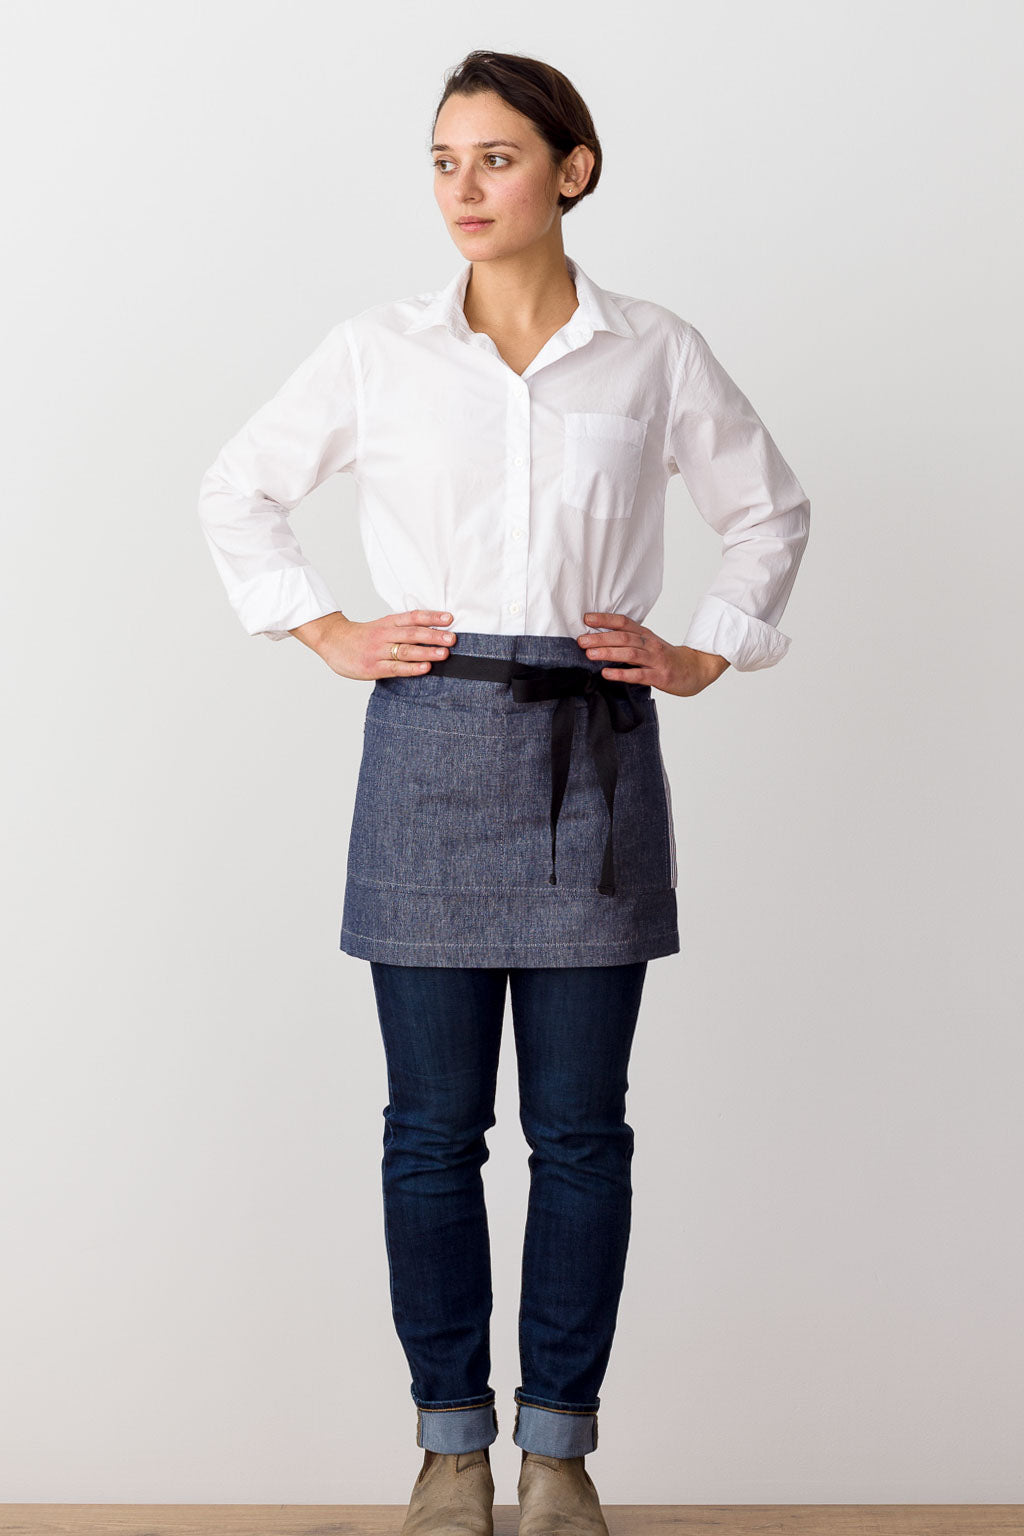 Bistro Shorty Apron Blue Denim with Black Straps, for Men or Women